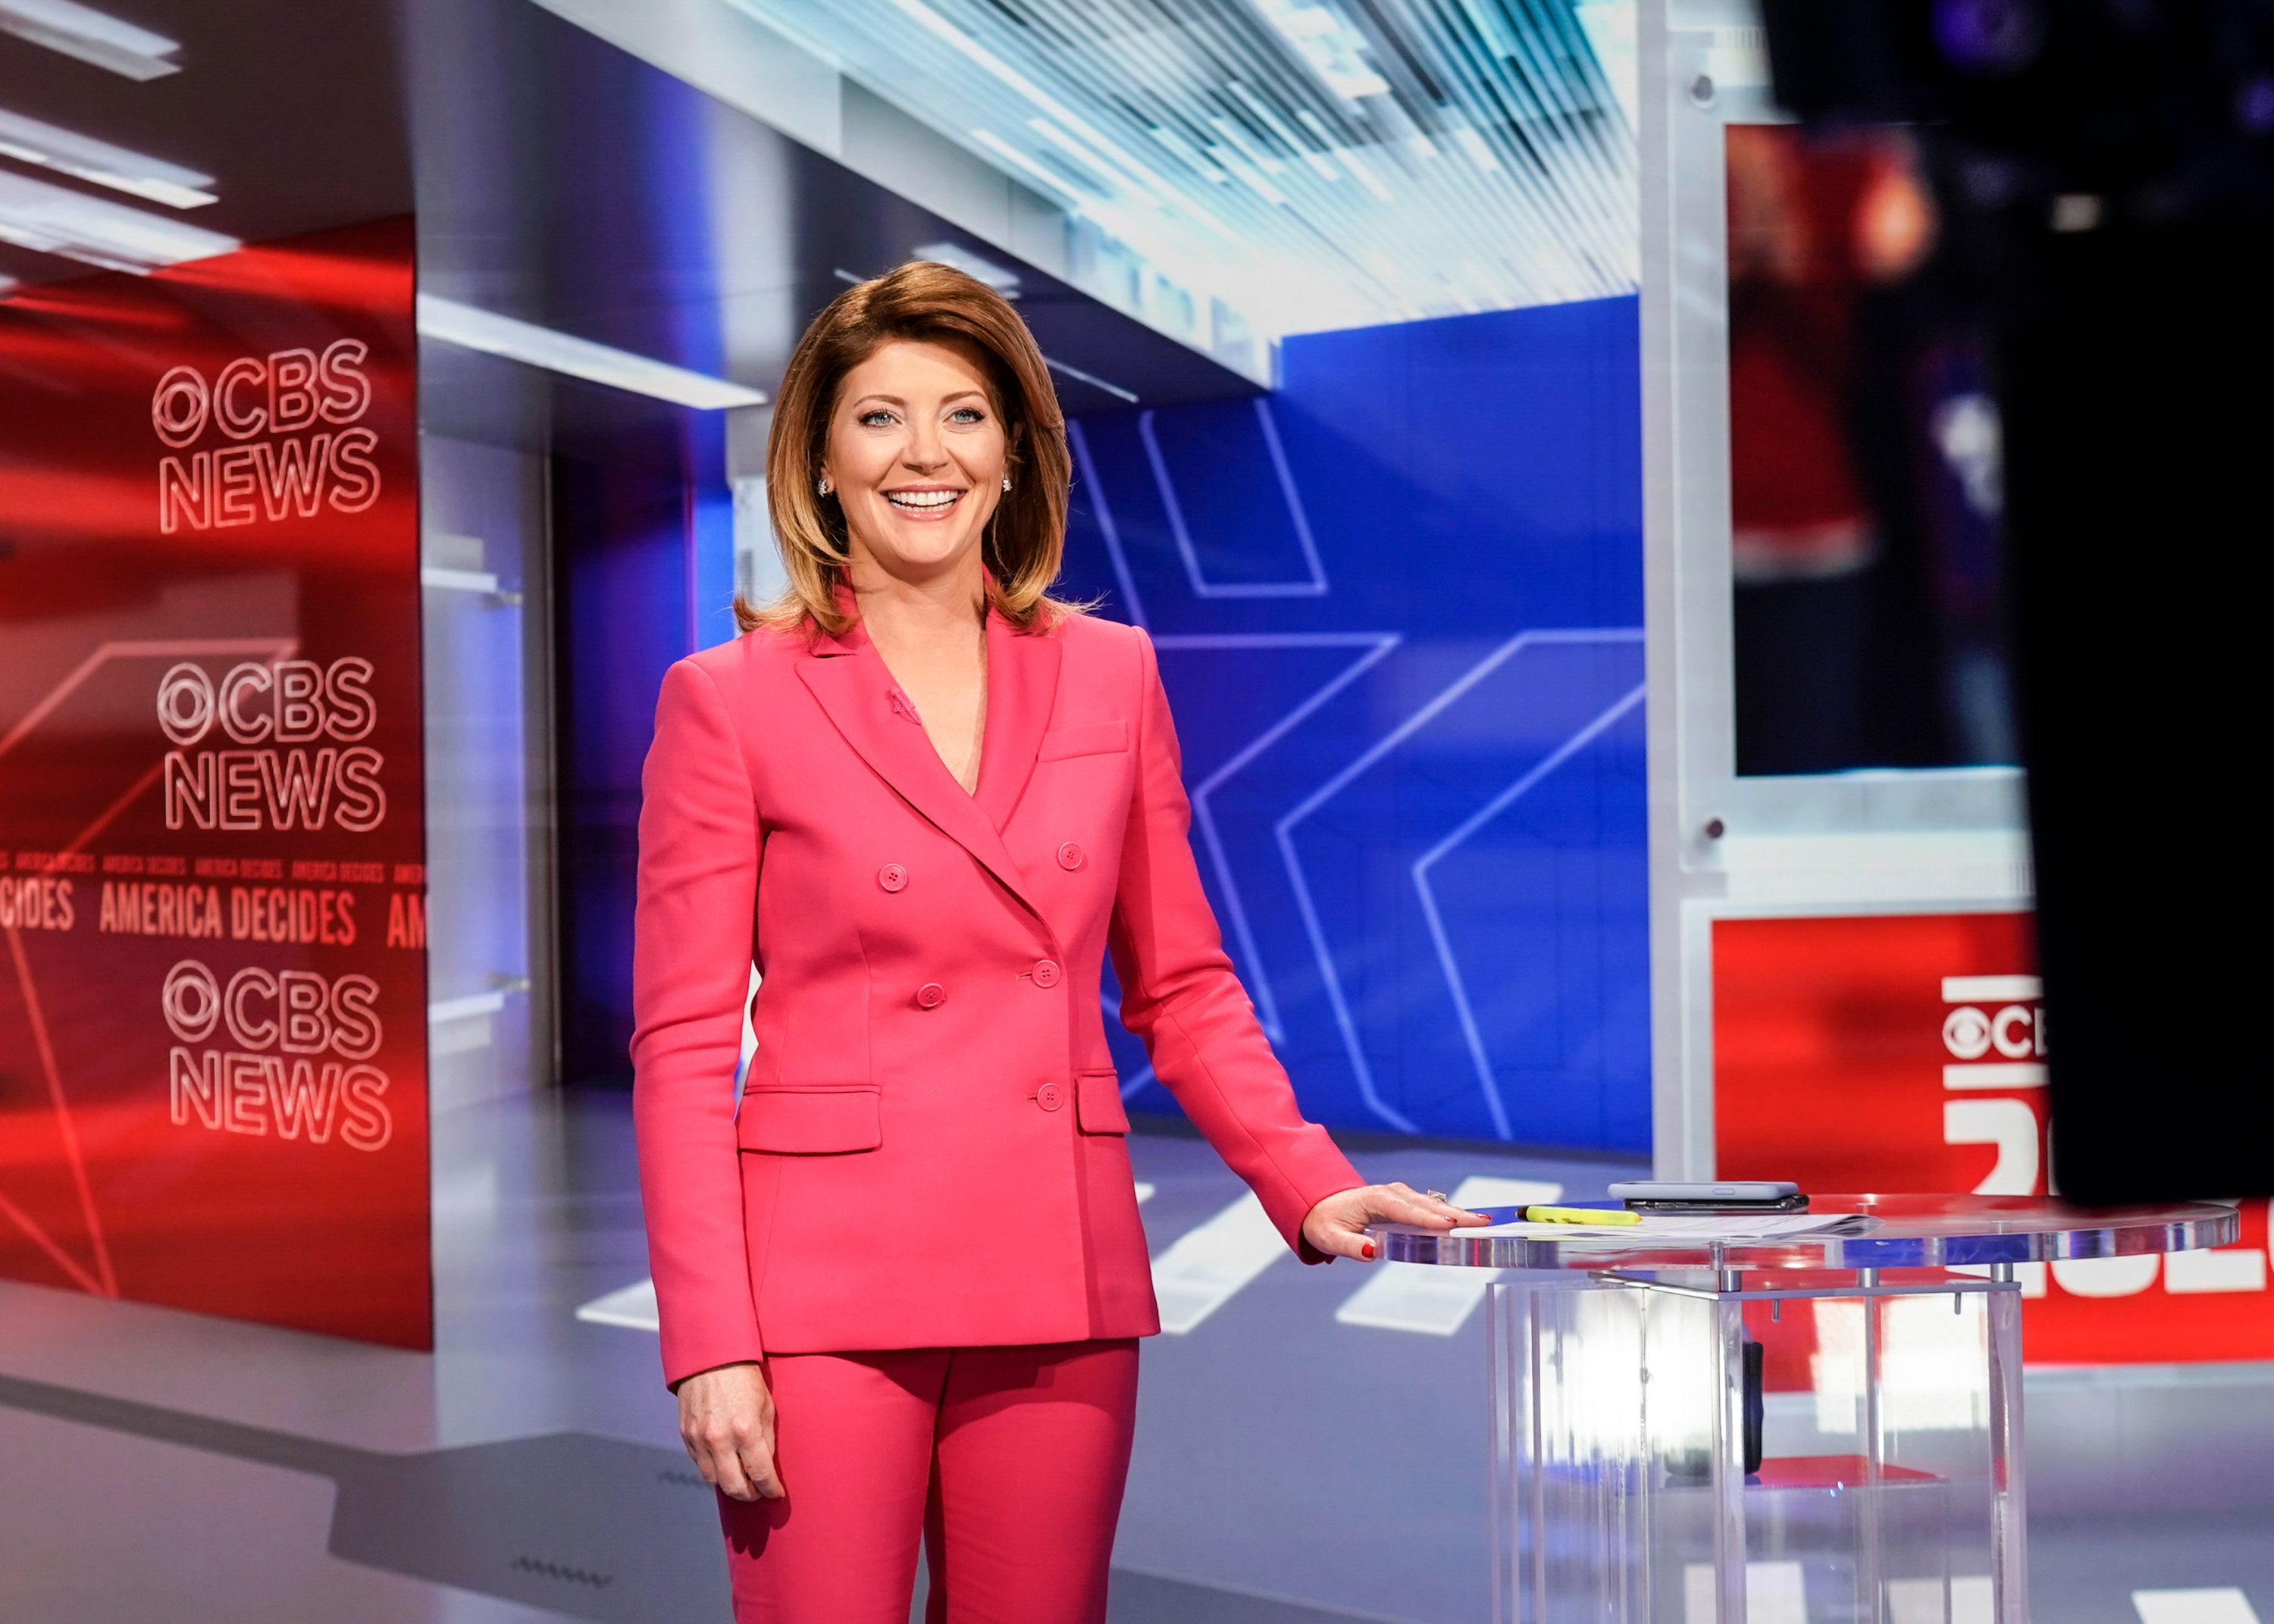 Norah O'Donnell broadcasts Live from CBS Bureau in Washington DC on August 27, 2020 | Photo: Getty Images